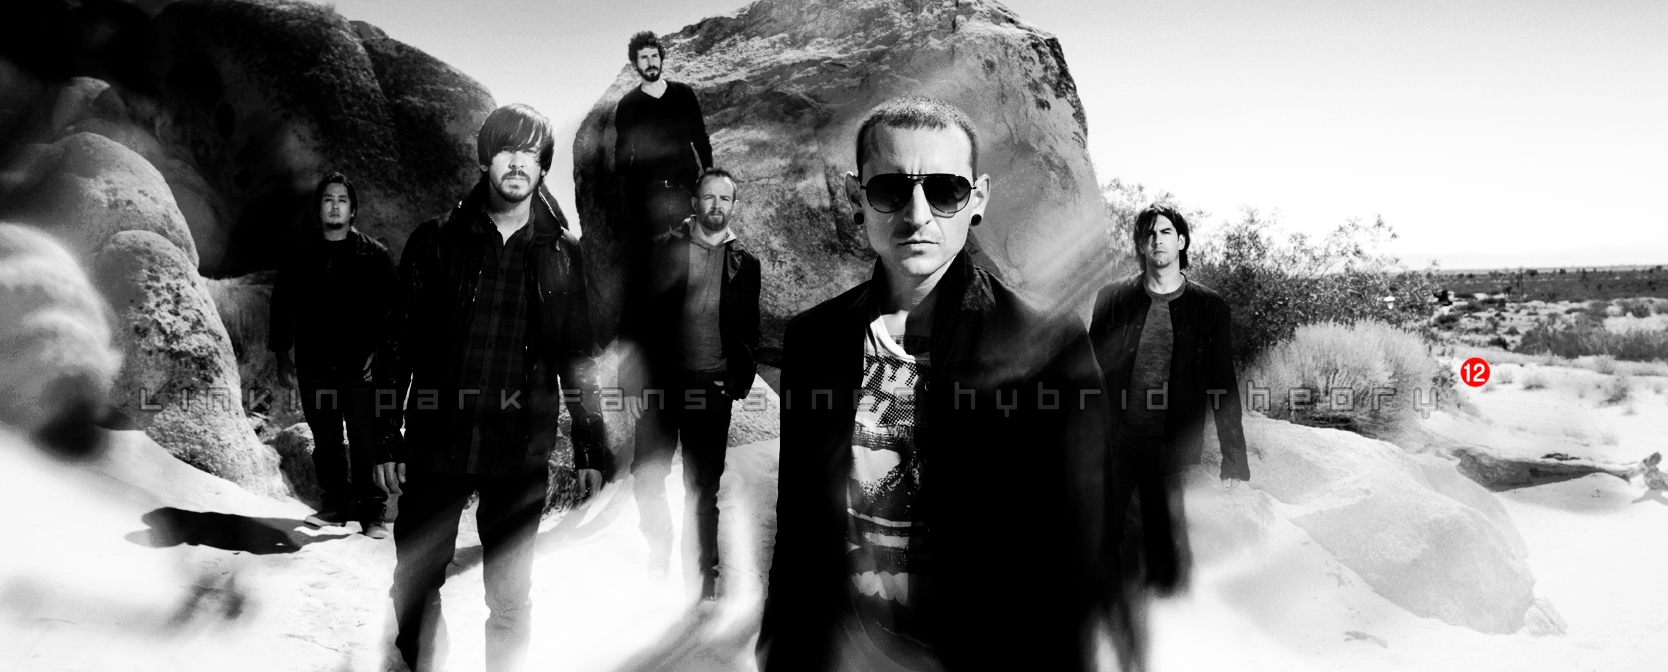 Chester Bennington Screaming Technique Wallpapers High Quality Is Cool Wallpapers